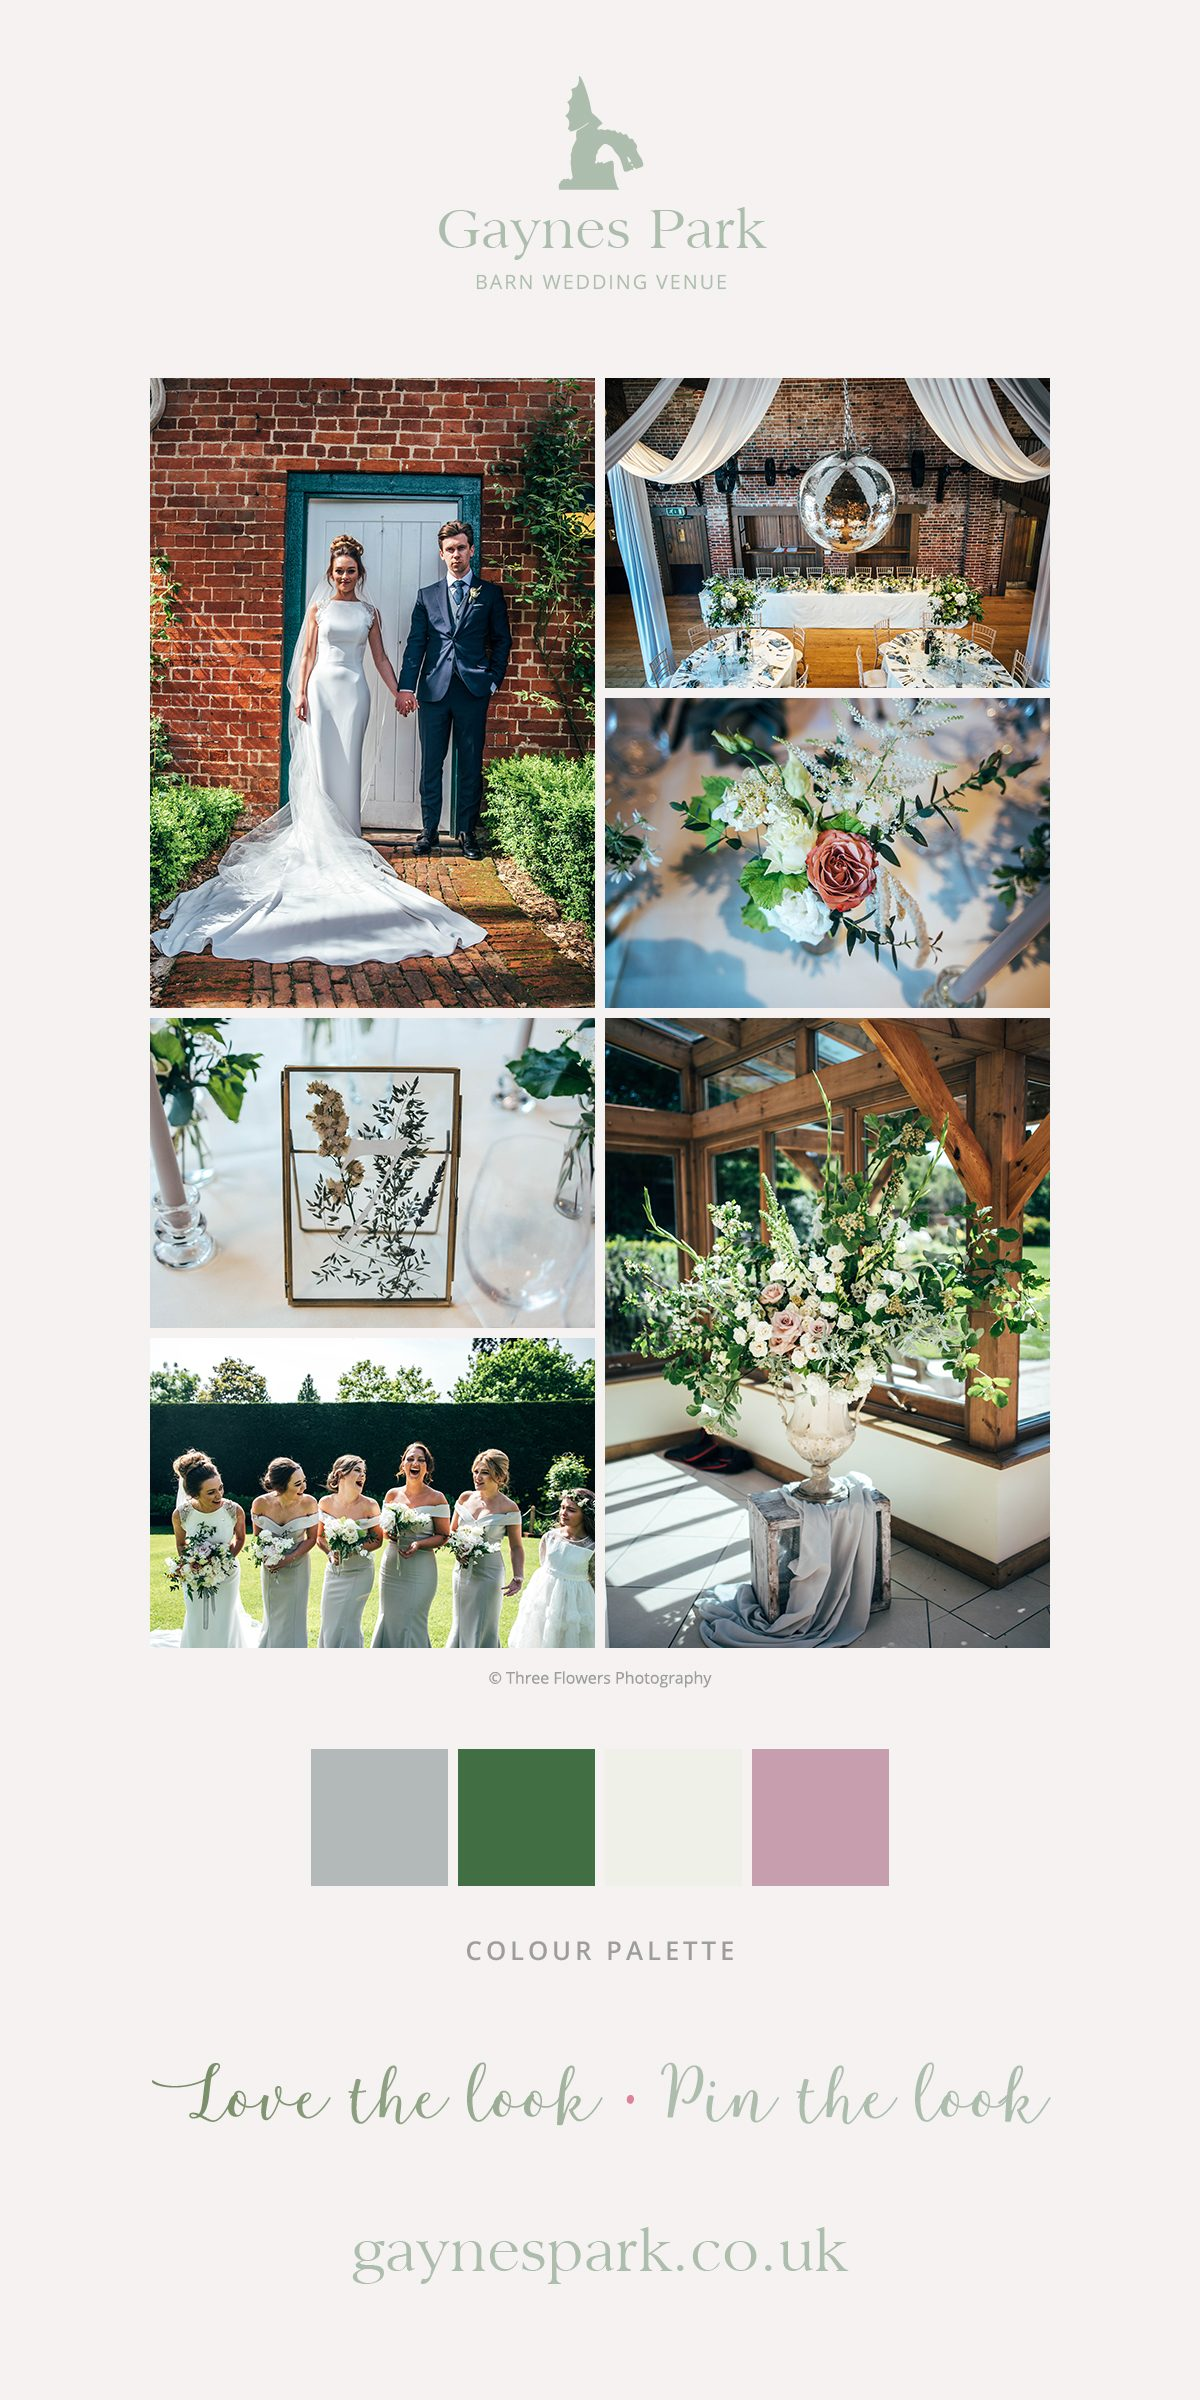 Jessica and Jason's real life wedding at Gaynes Park